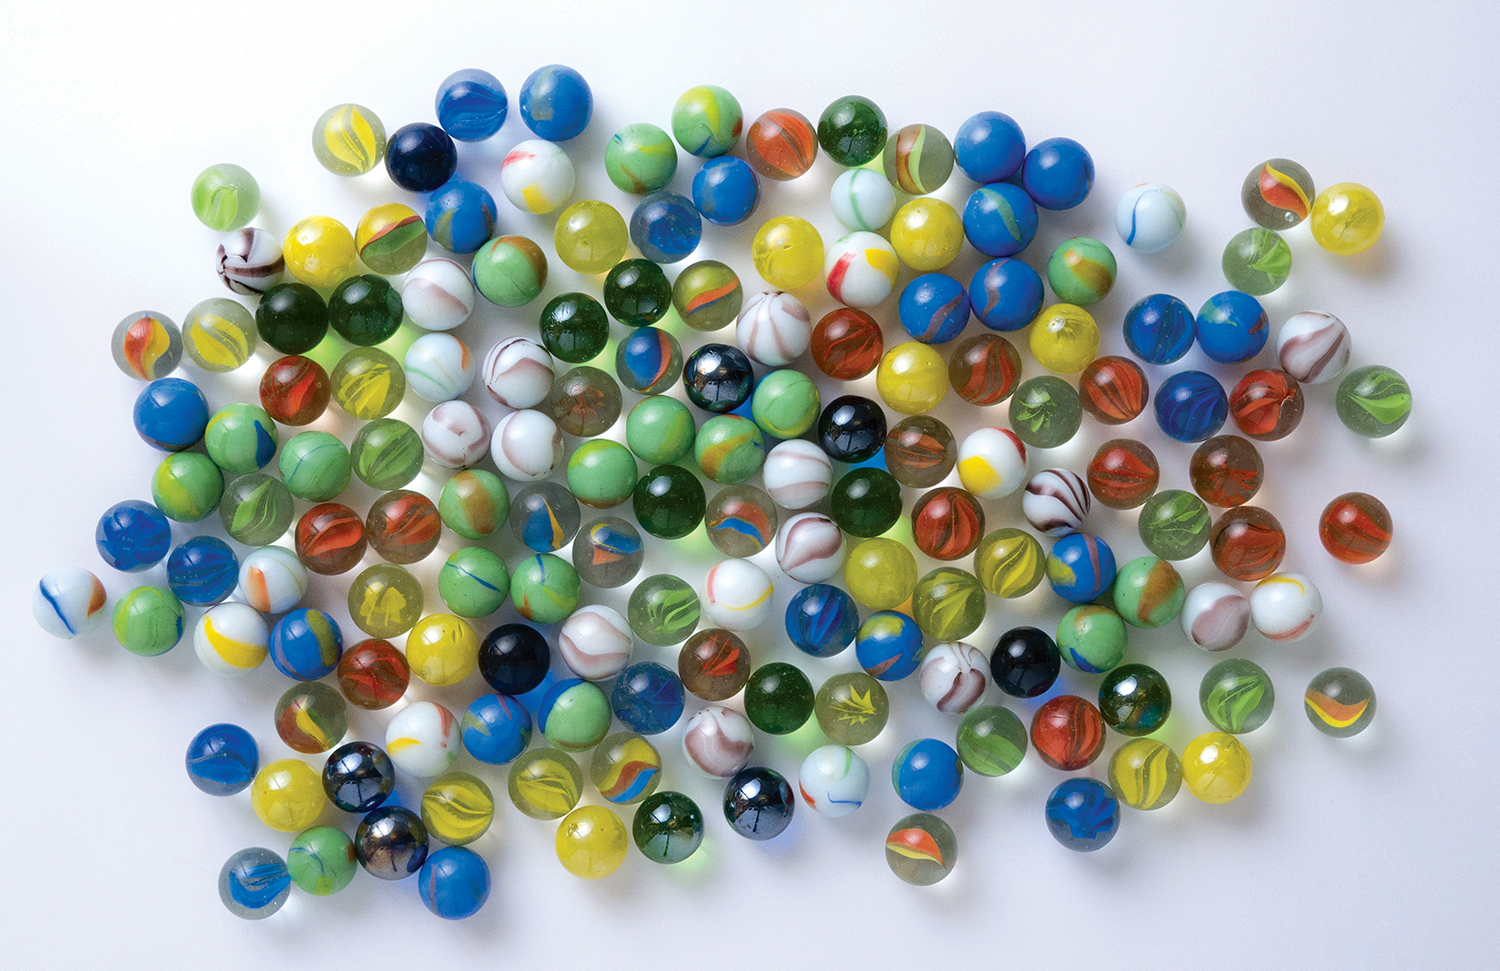 Bank of America reminds you … you used to play marbles. For you, they were uncountable.